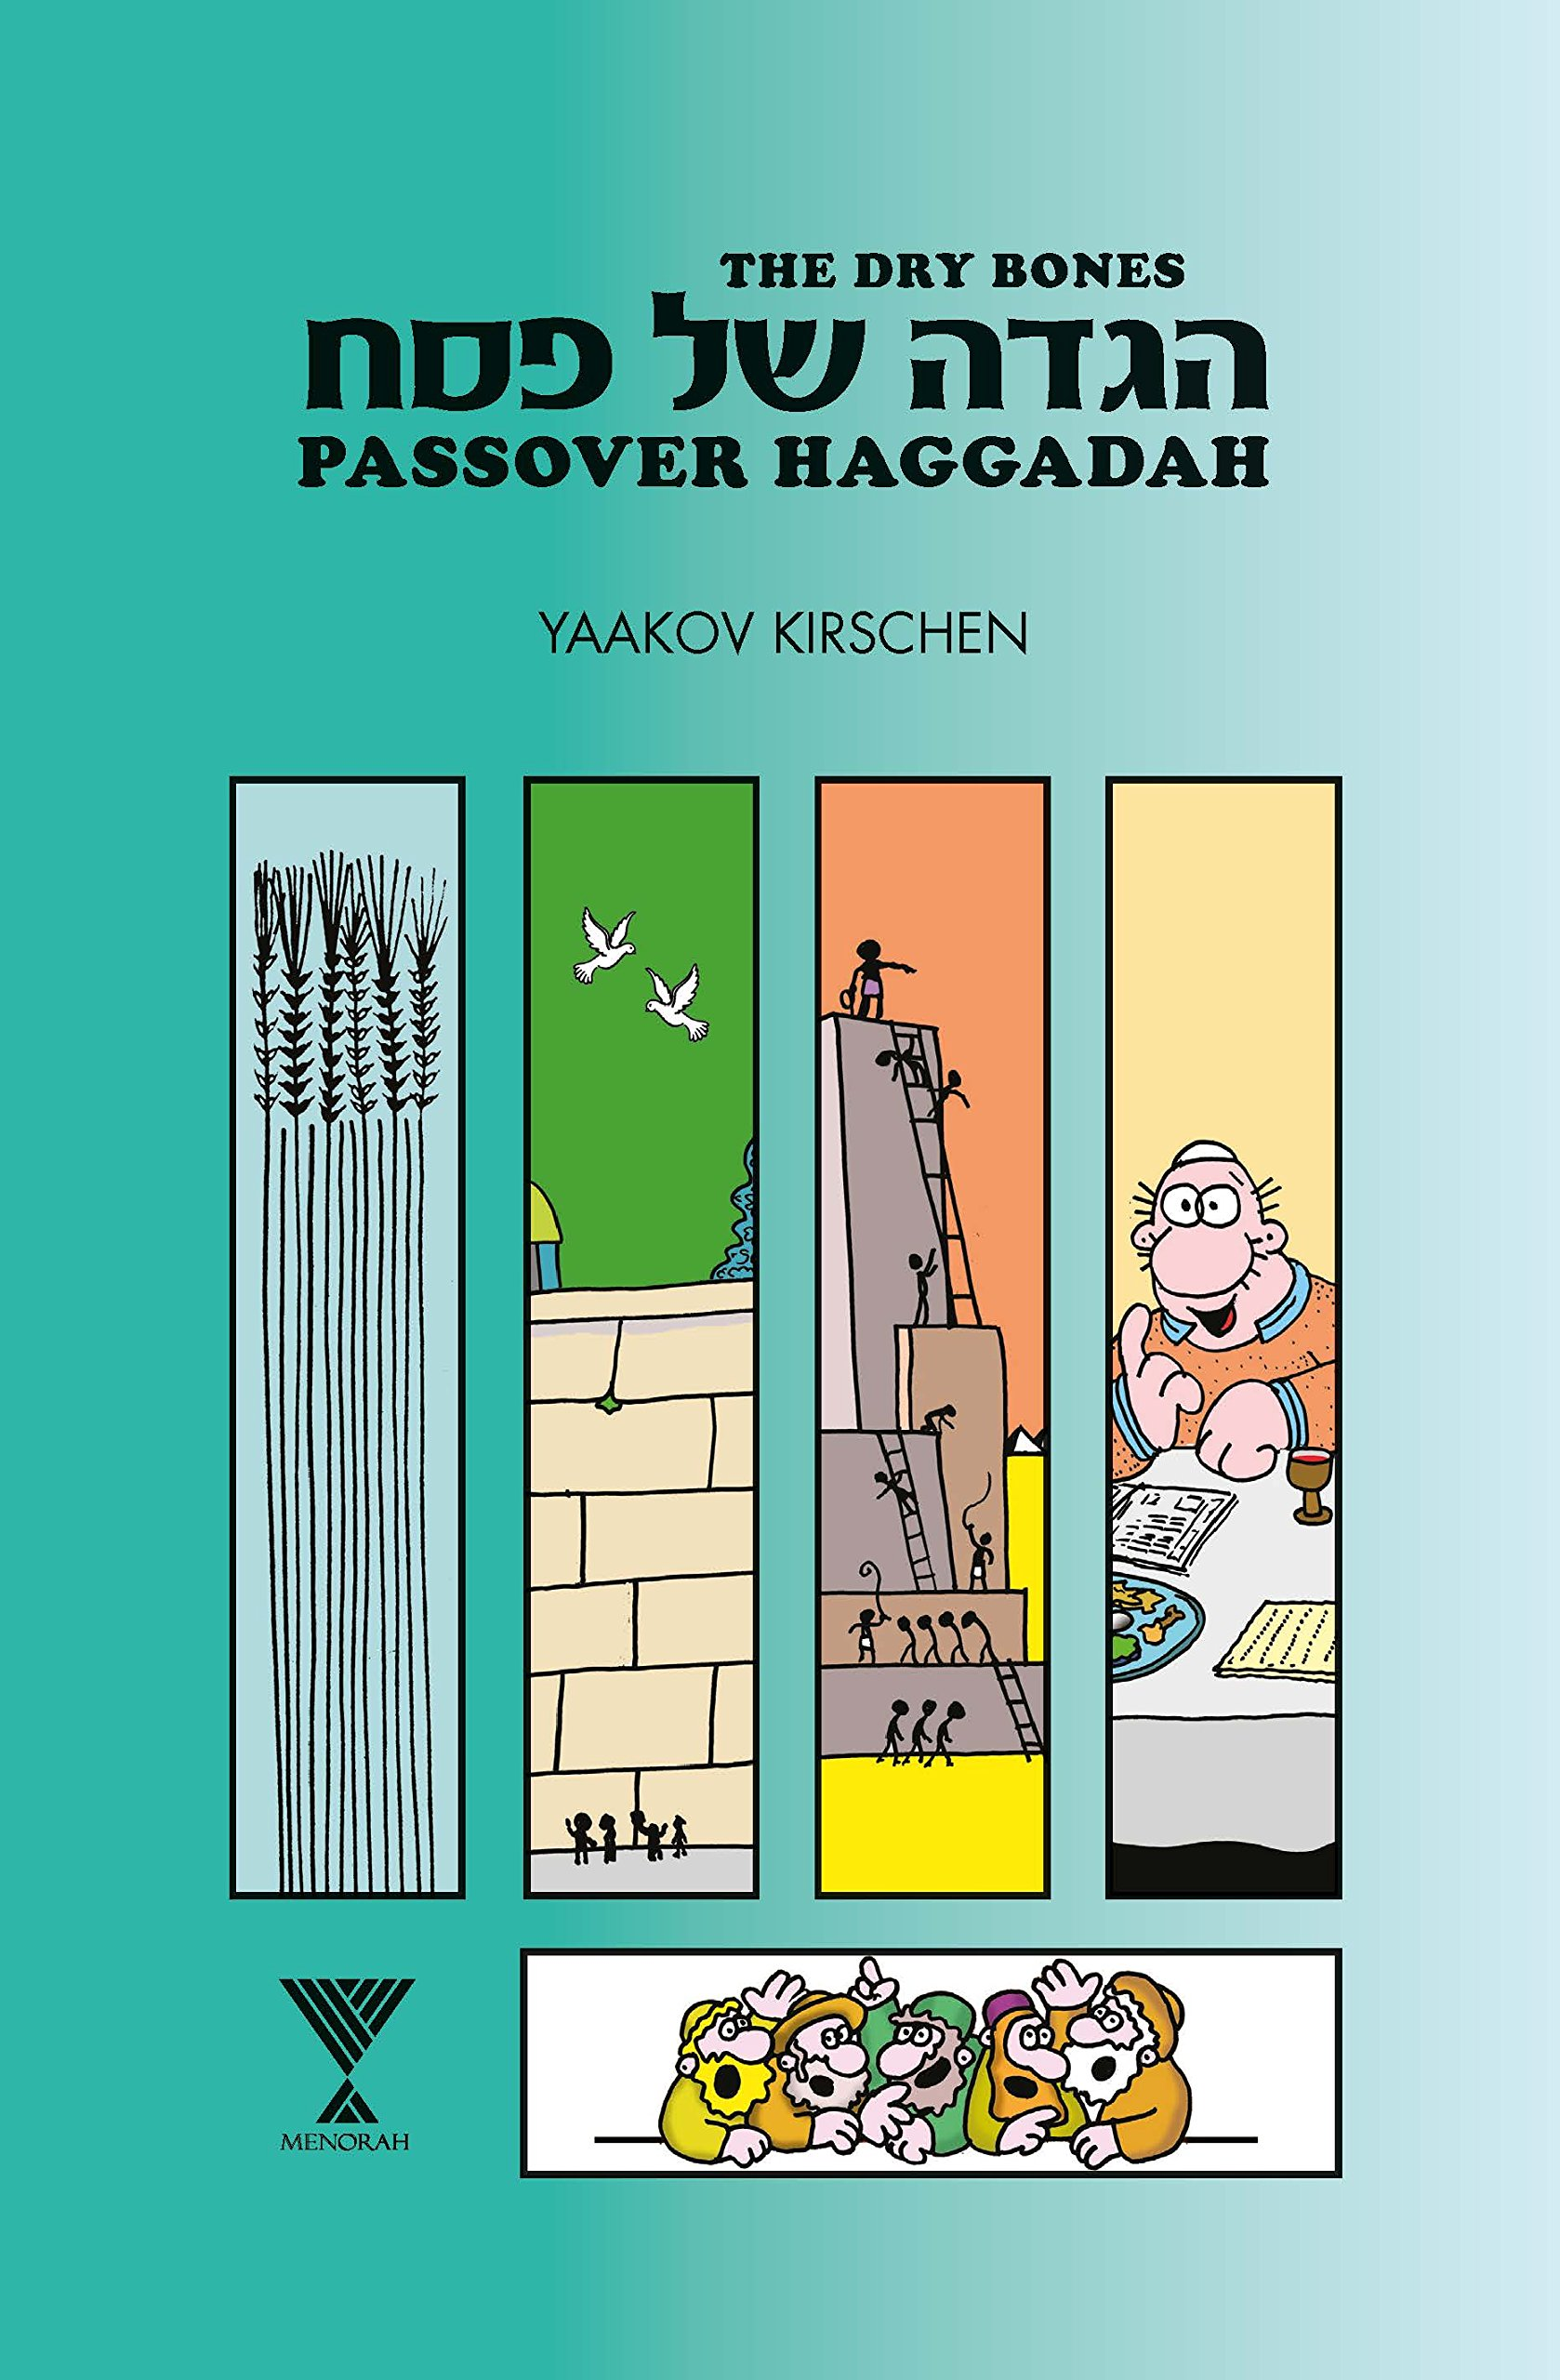 The Dry Bones Passover Haggadah (Hebrew and English Edition): Yaakov  Kirschen: 9781940516769: Amazon.com: Books